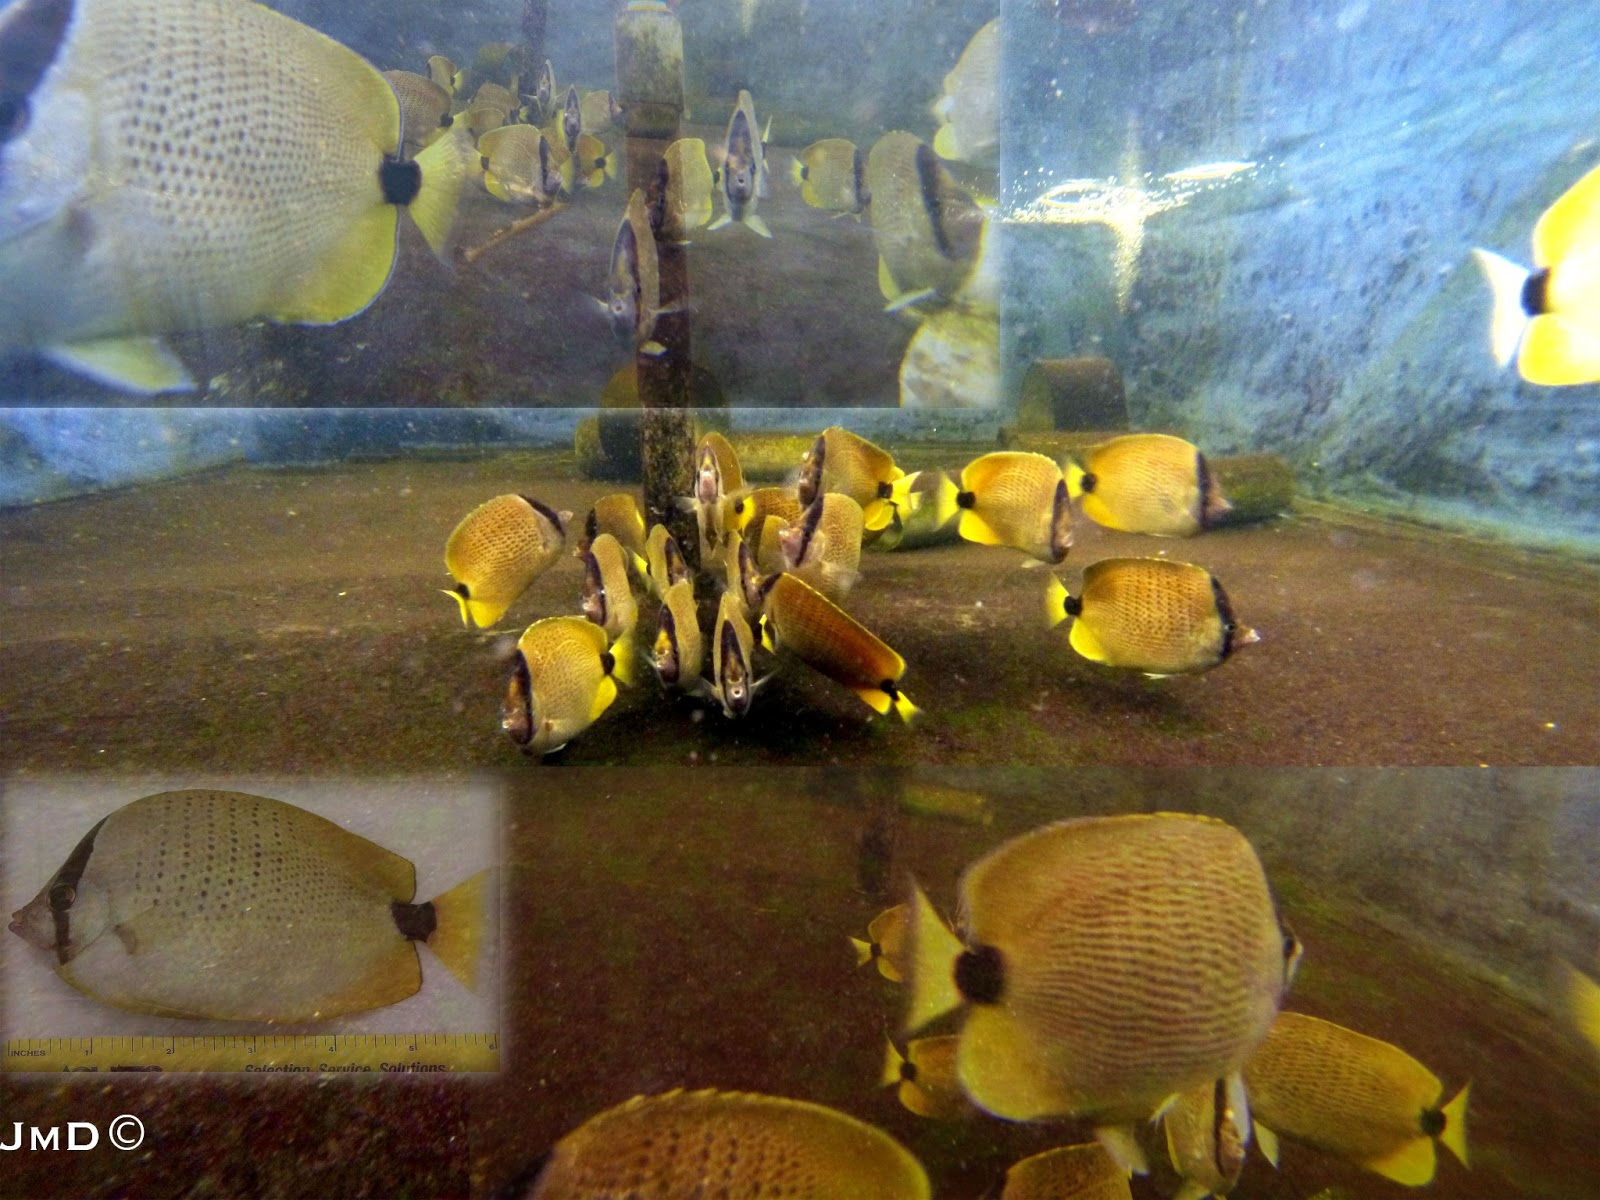 Milletseed Butterflyfish Broodstock, Chaetodon miliaris, at University of Florida's Tropical Aquaculture Laboratory